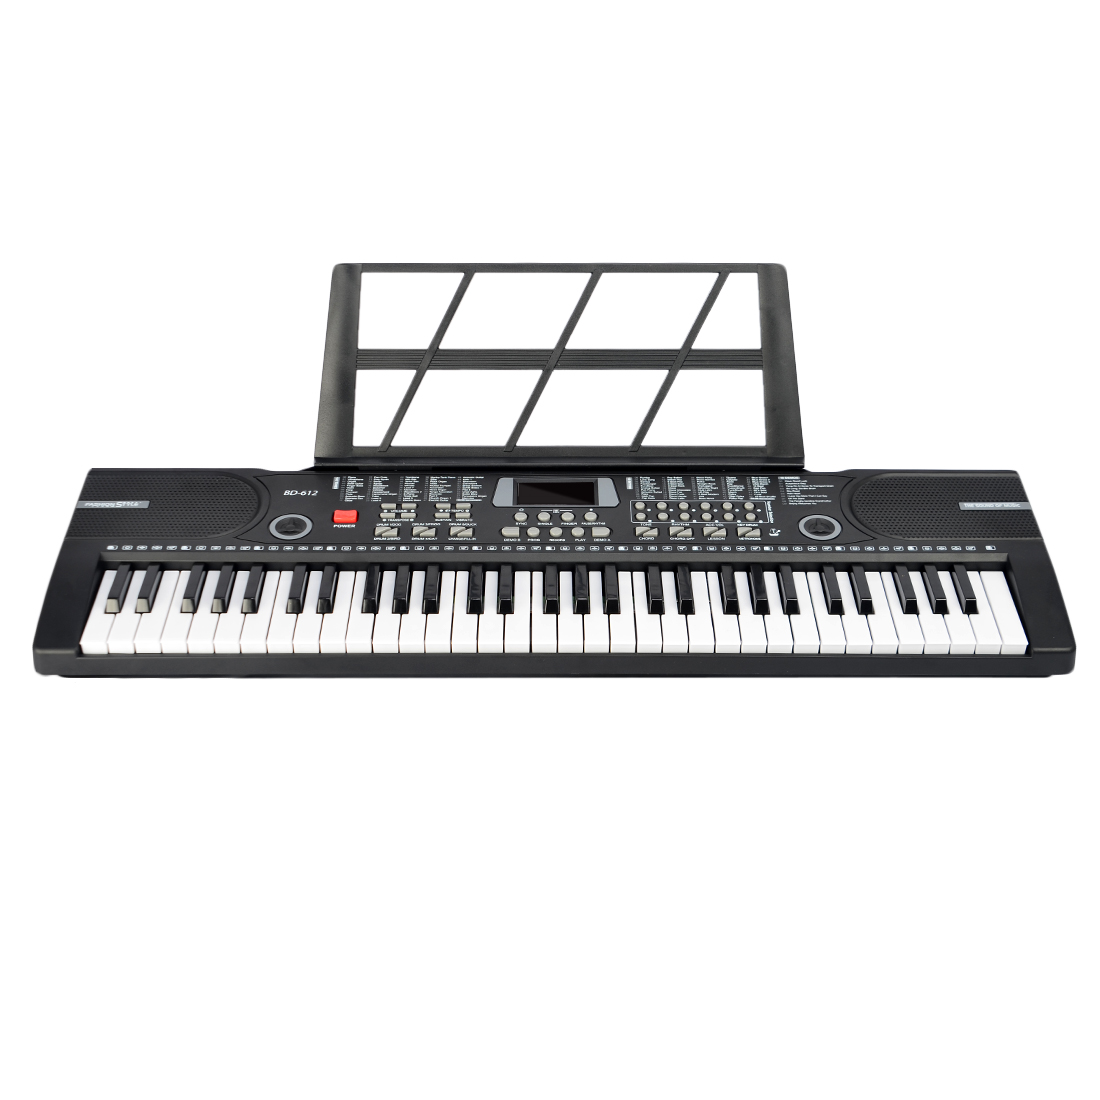 61 Keys Electronic Keyboard Piano With Microphone  Piano Score Stand Musical Toy For Children Battery USB Dual-Purpose - Black61 Keys Electronic Keyboard Piano With Microphone  Piano Score Stand Musical Toy For Children Battery USB Dual-Purpose - Black